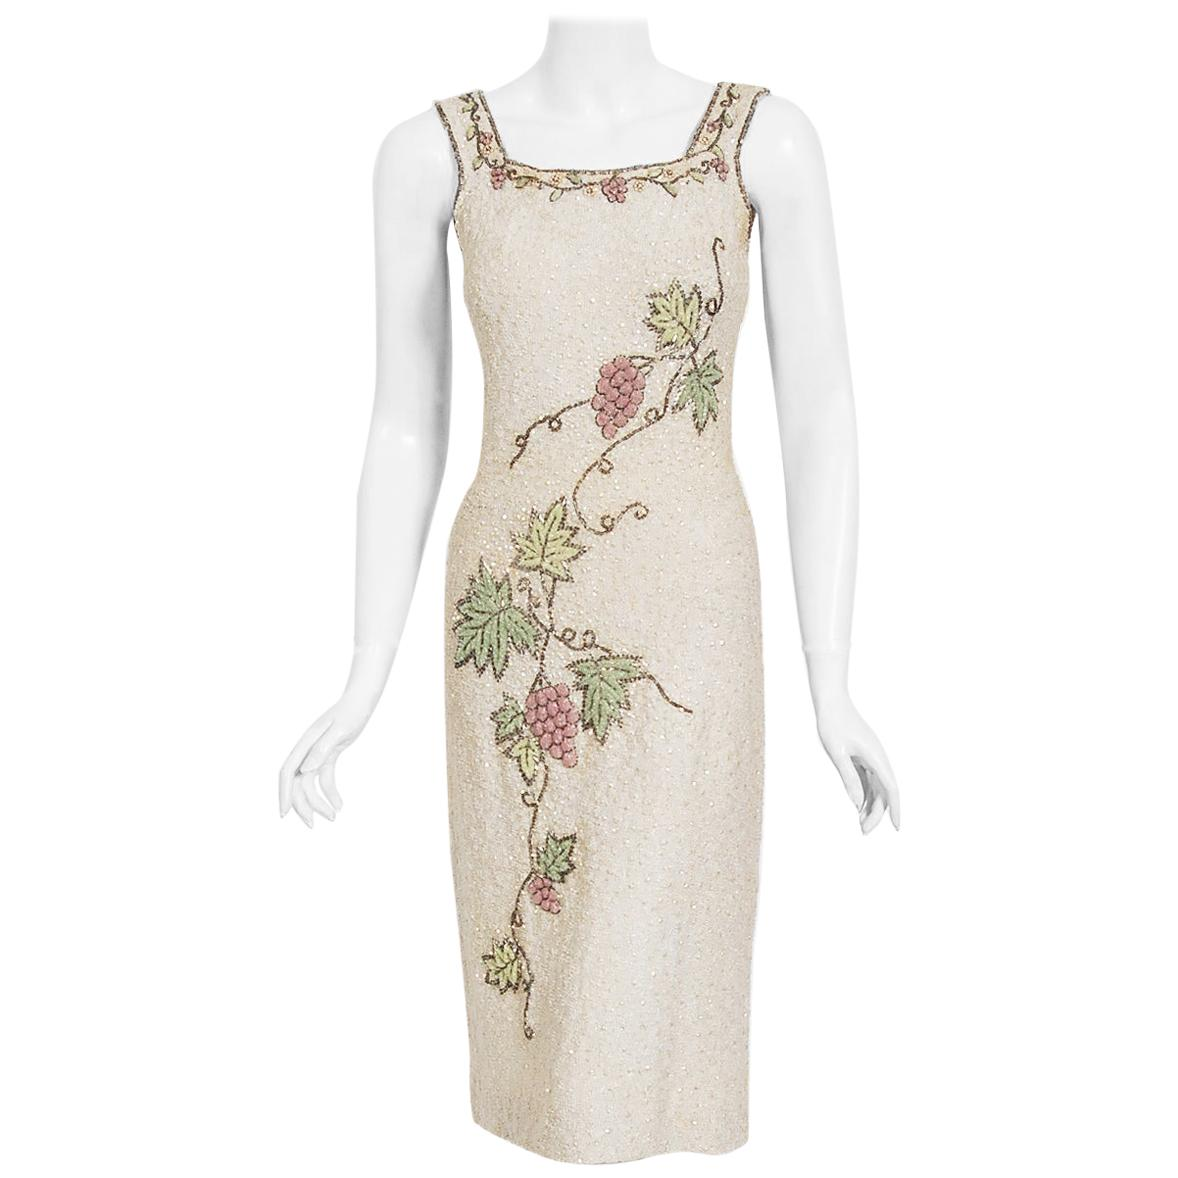 Vintage 1950's Beaded Grapevine Motif Hand-Knit Sequin Wool Hourglass Dress